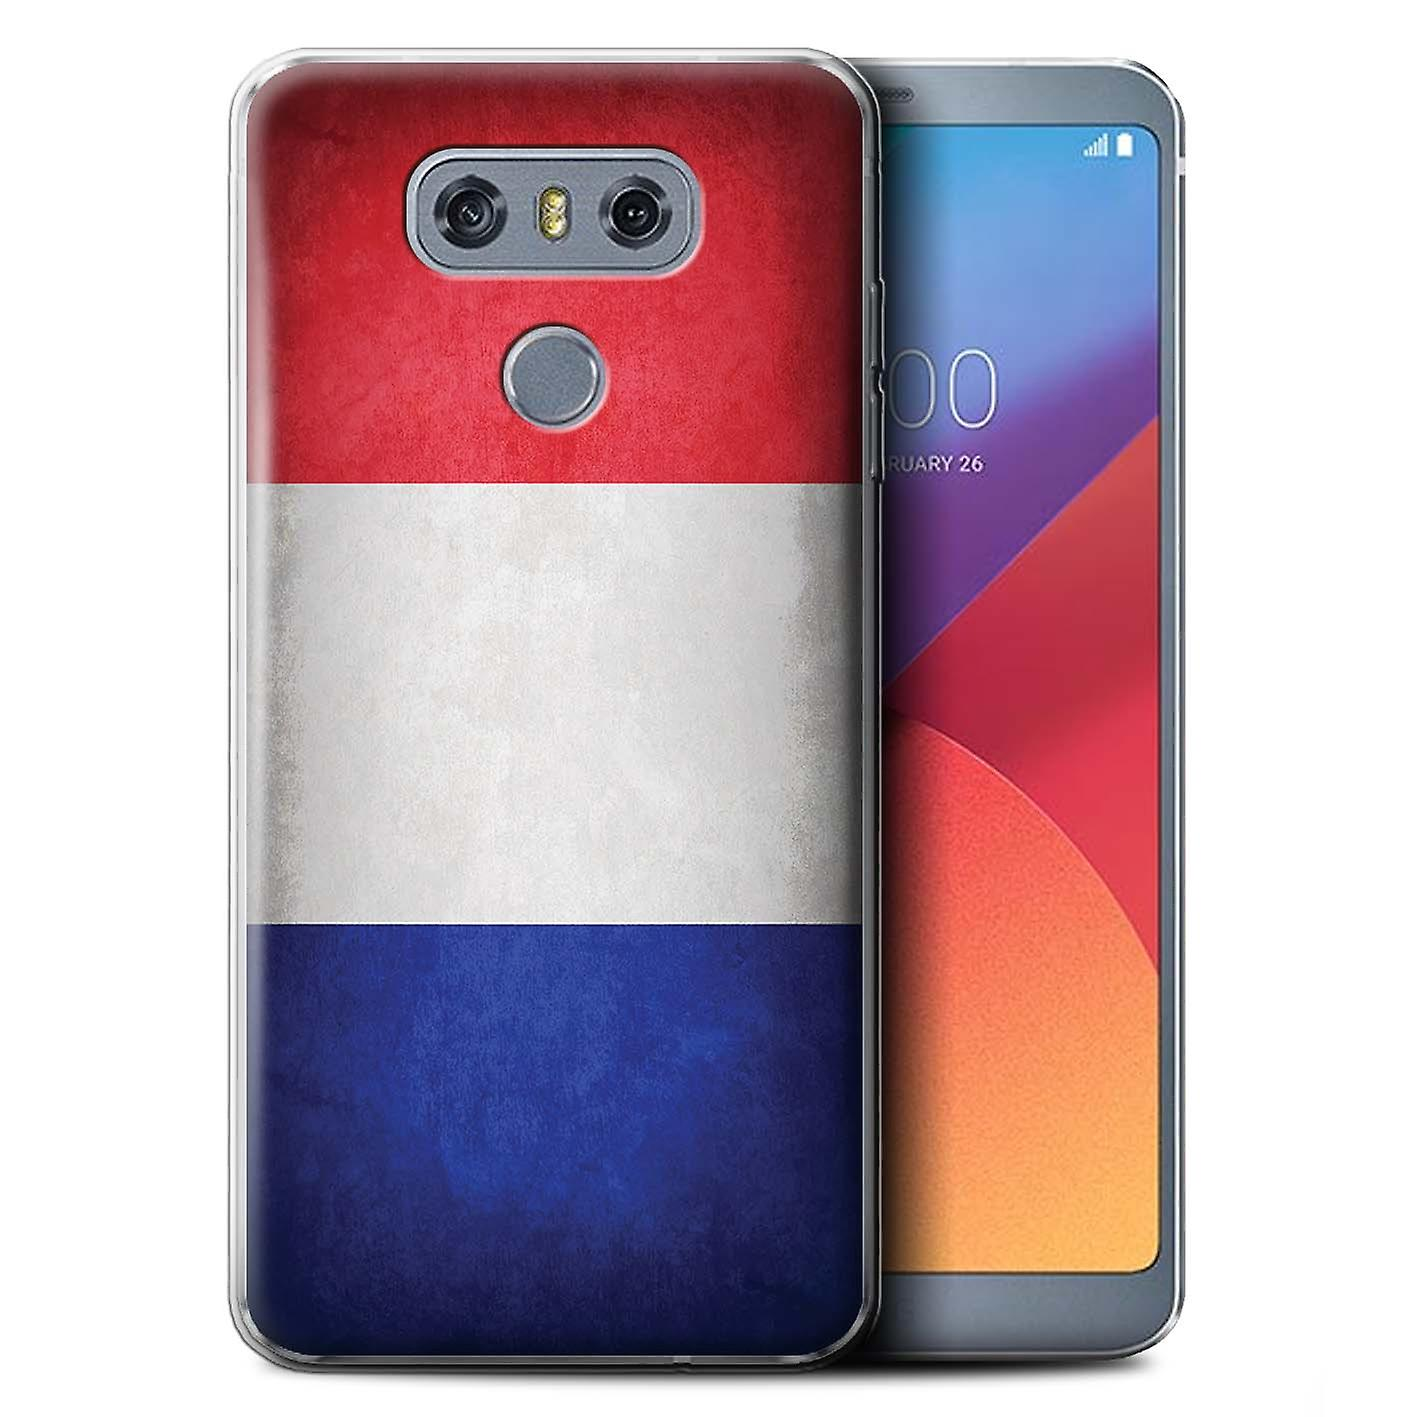 Cuisinart Vs Kitchenaid Mixer Stuff4 Gel Tpu Phone Case/cover Für Lg G6/h870/ls993/vs998